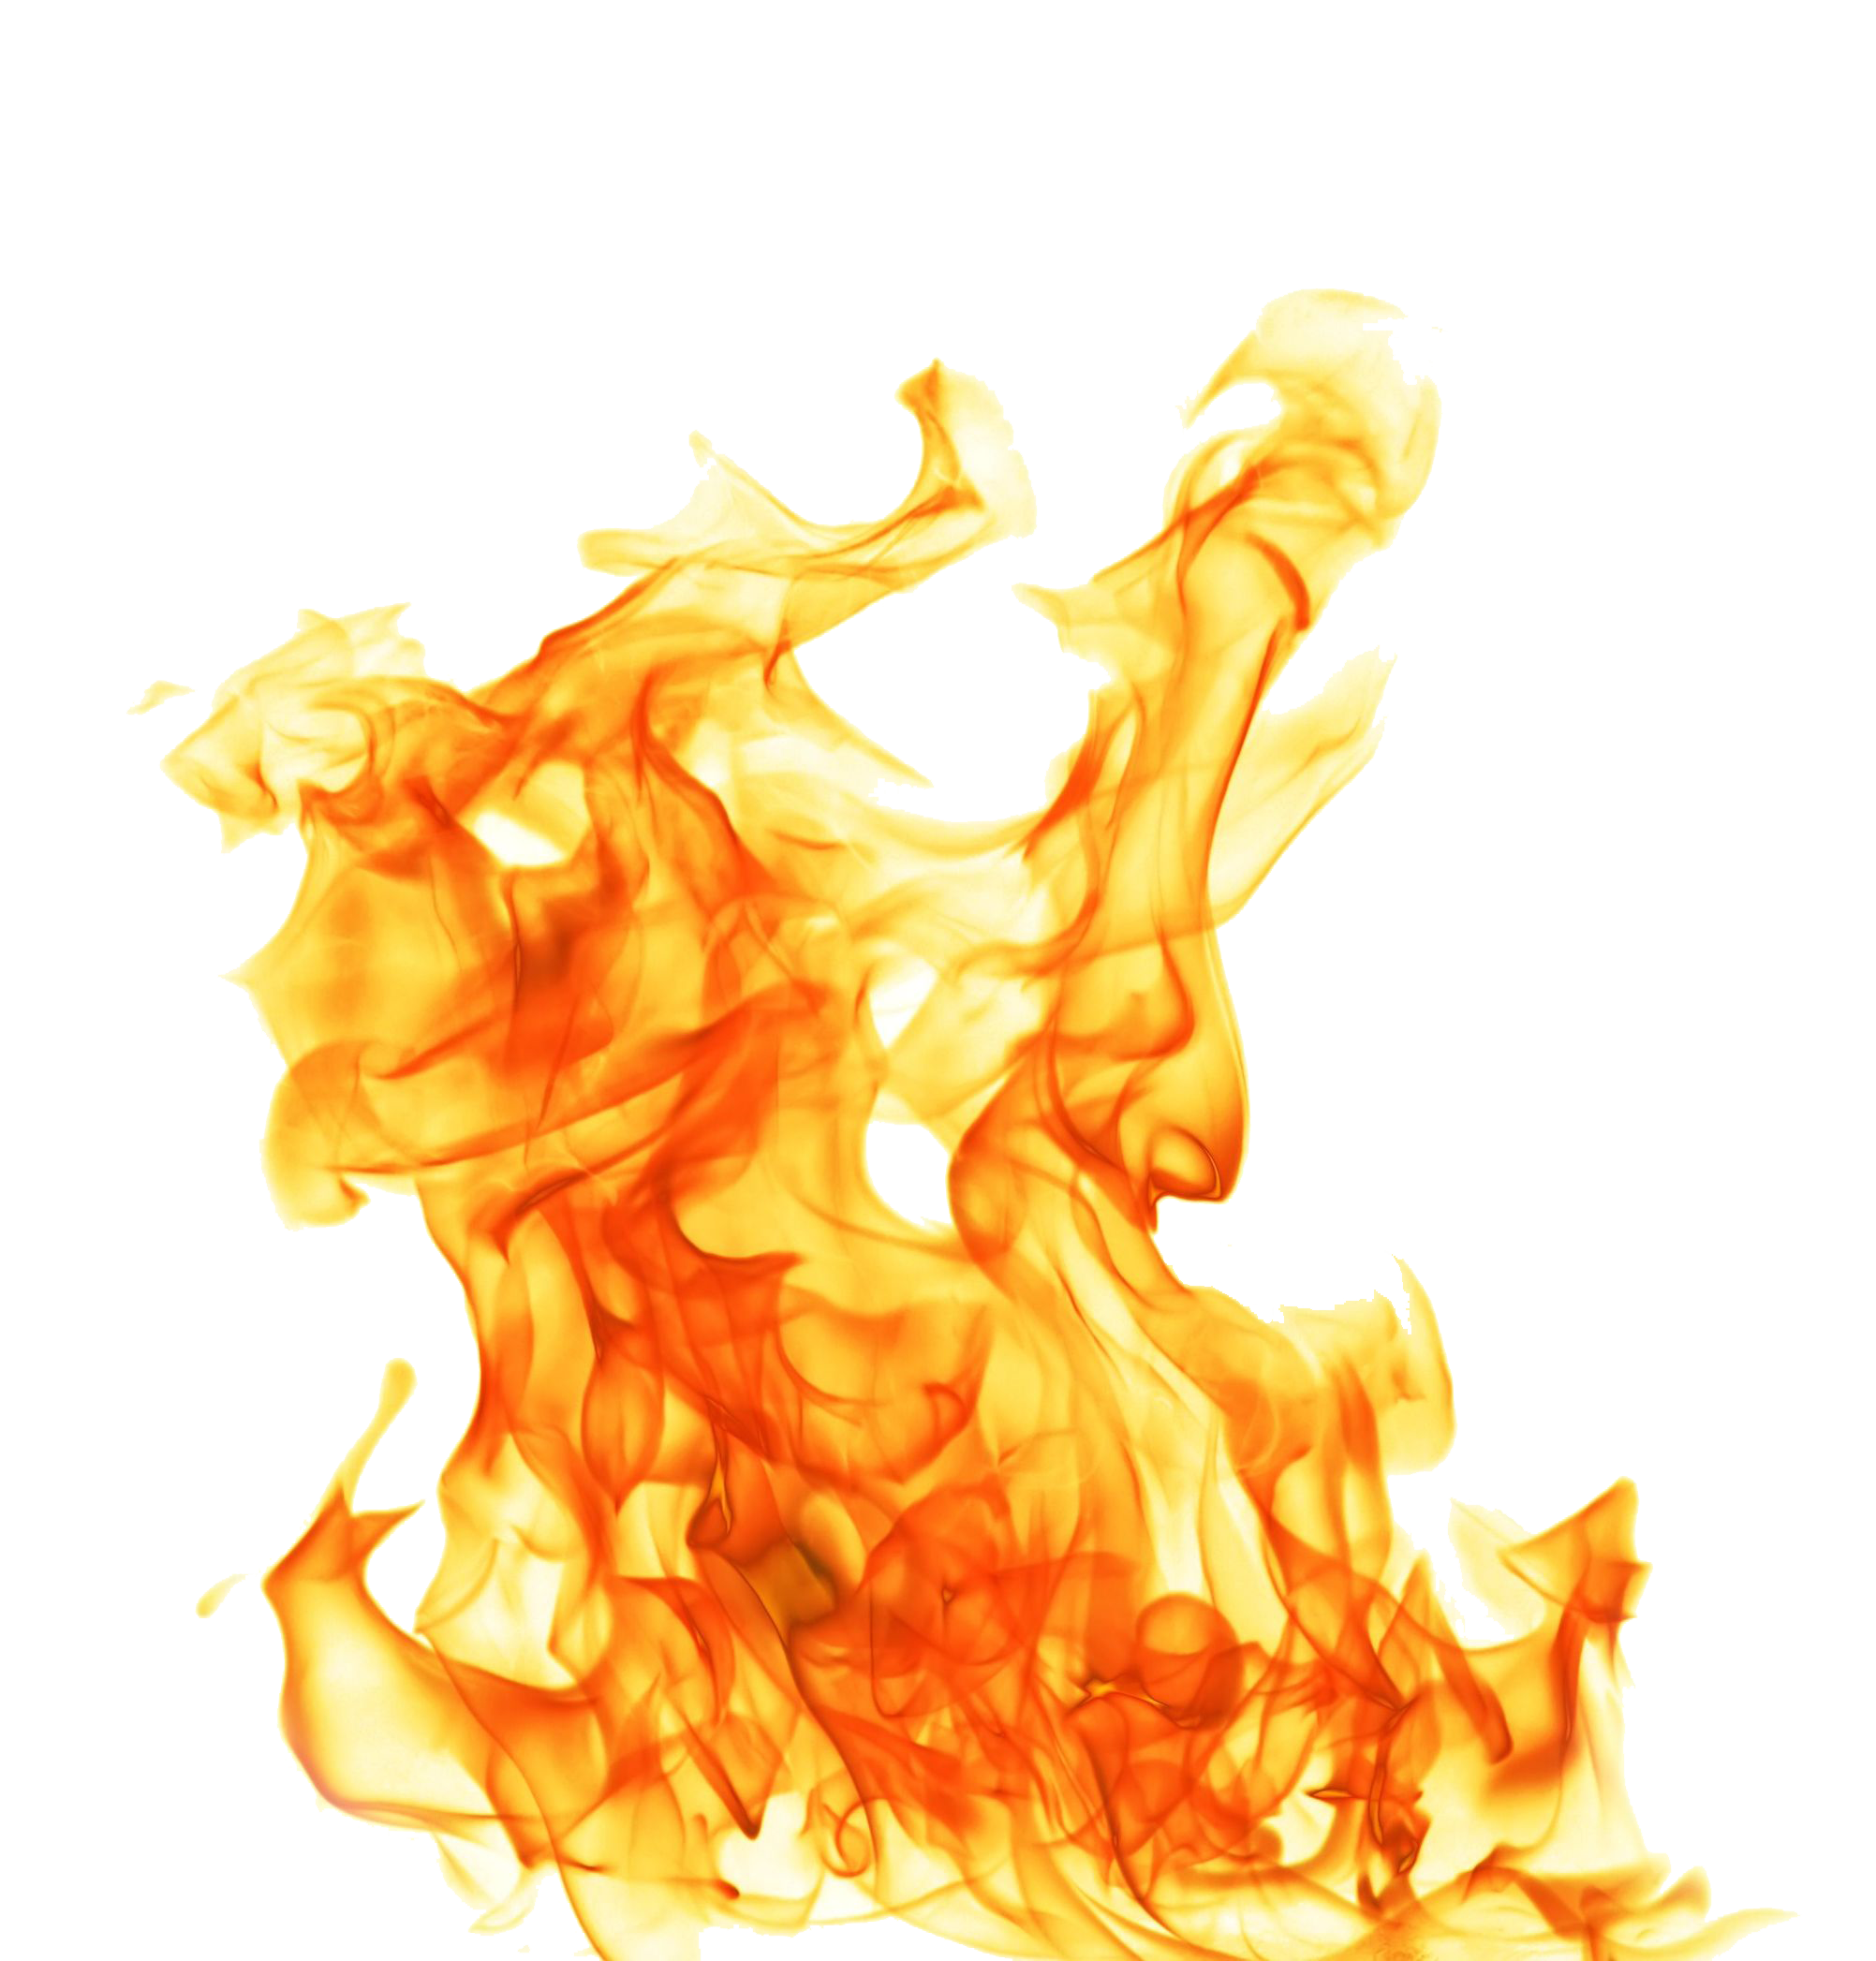 Transparent images free. Fire png clipart library download